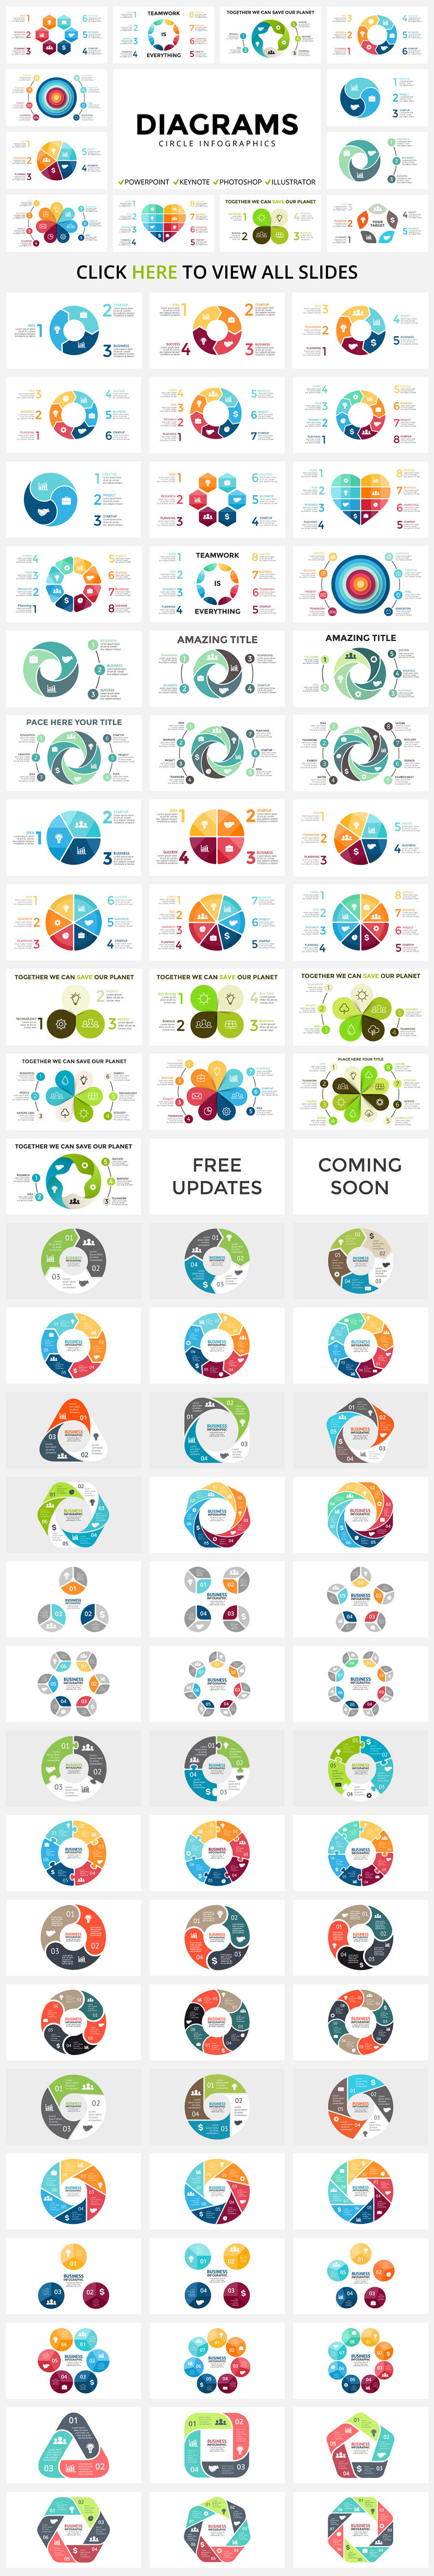 Cool Infographics in 2020. Best Infographics Bundle: 1500 items - $29 - 19 CIRCLE DIAGRAMS